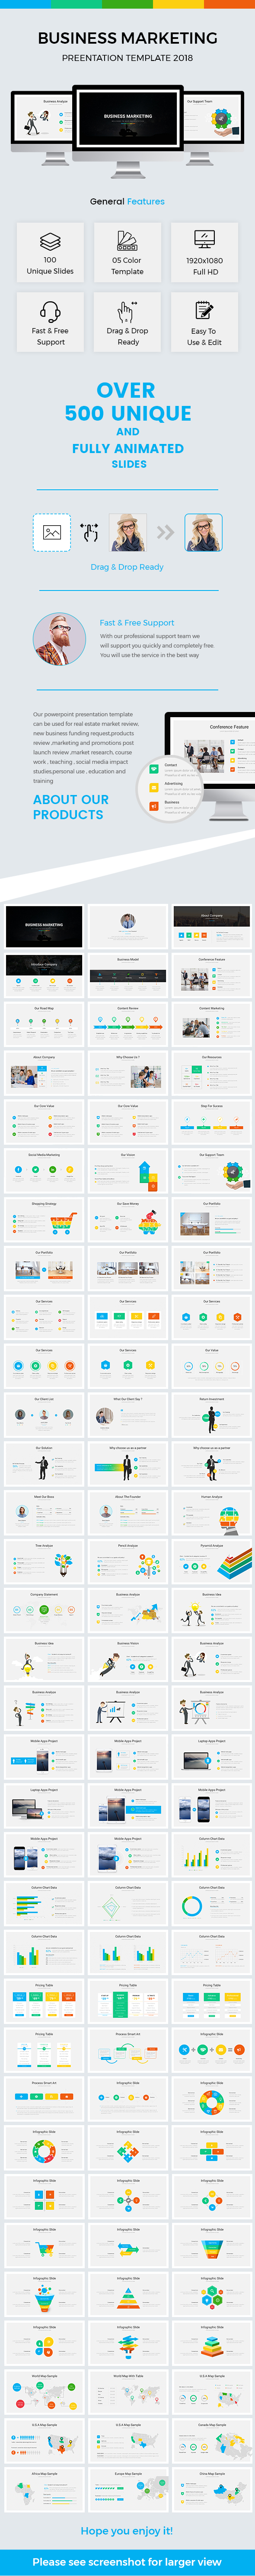 Business Marketing Keynote Template 2018 - Business Keynote Templates